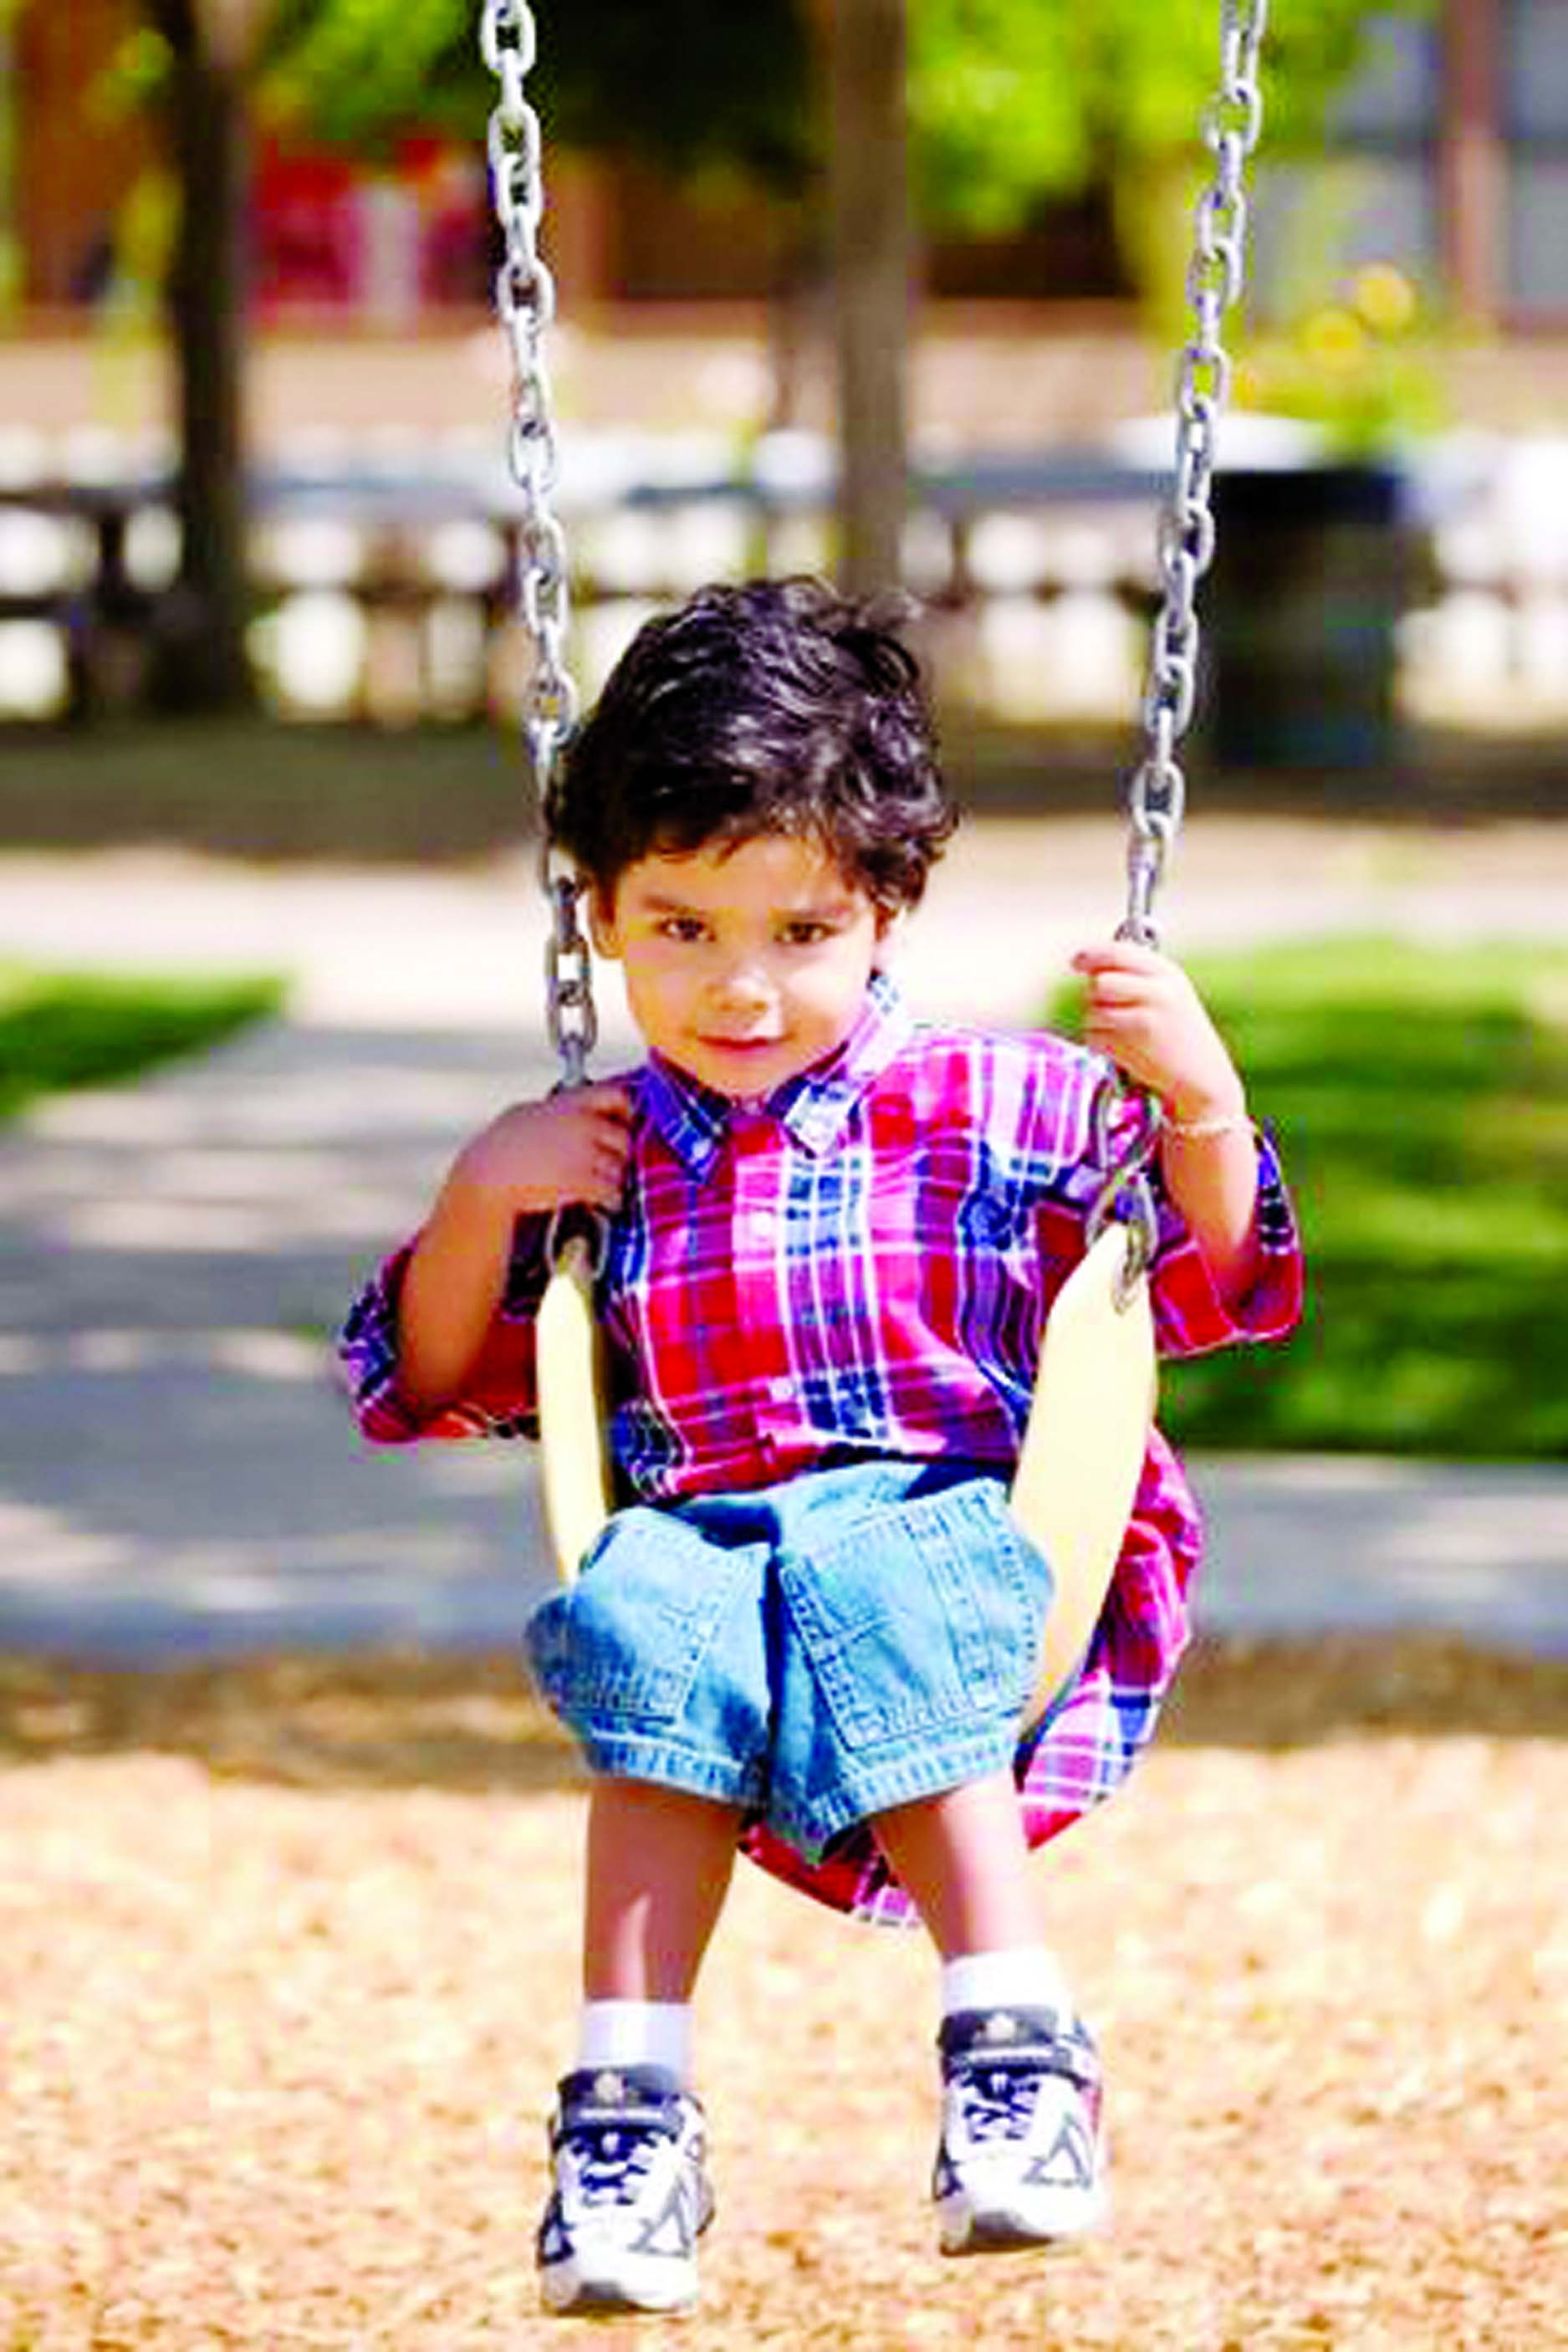 Hitting the play ground swings often can help children cooperate